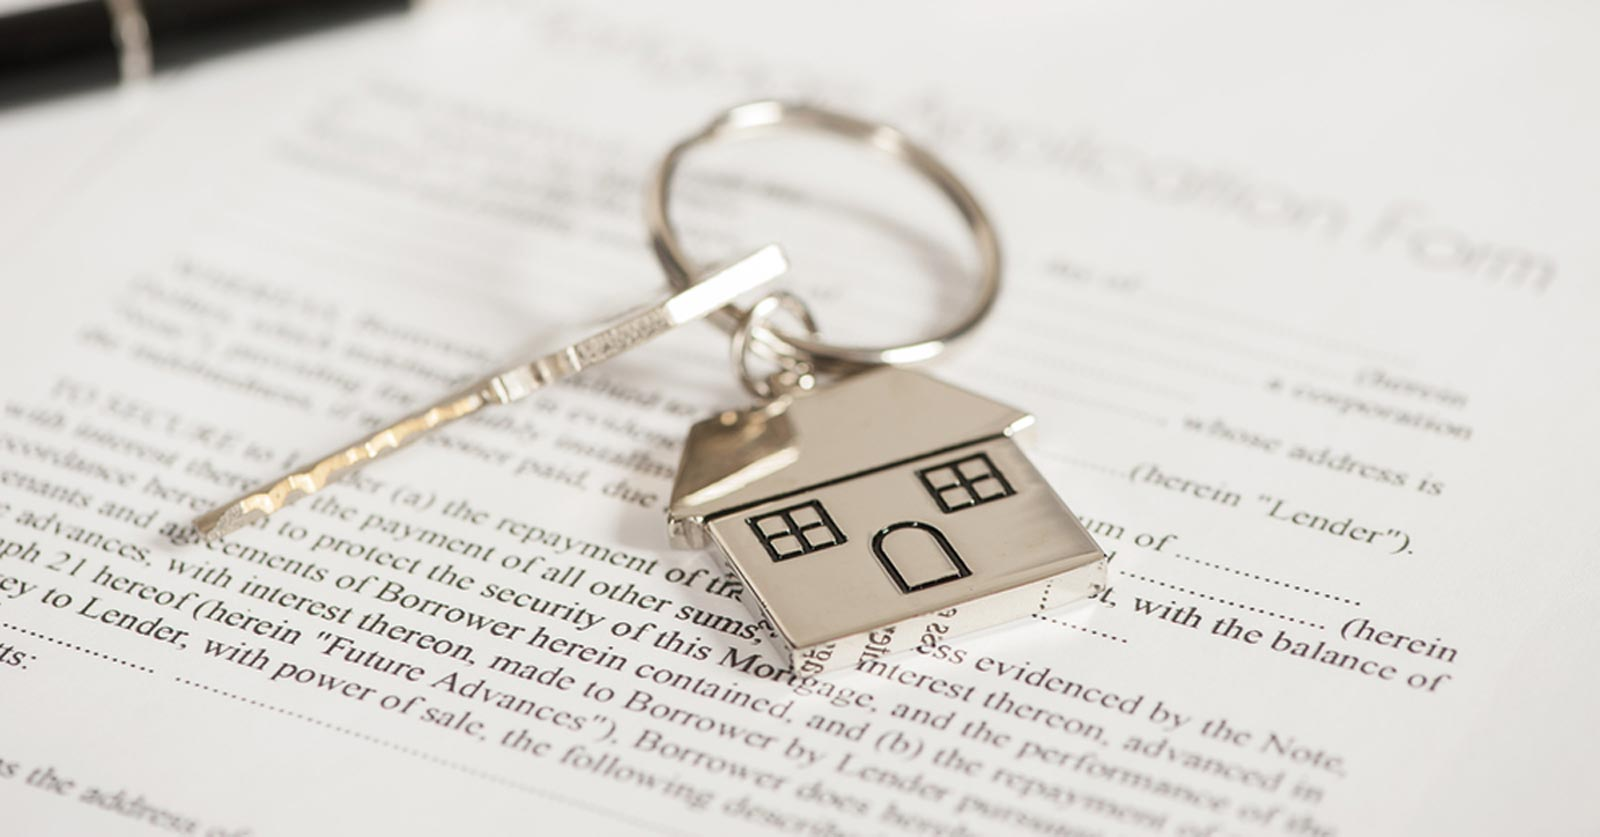 What does a demand feature mean in a mortgage loan?